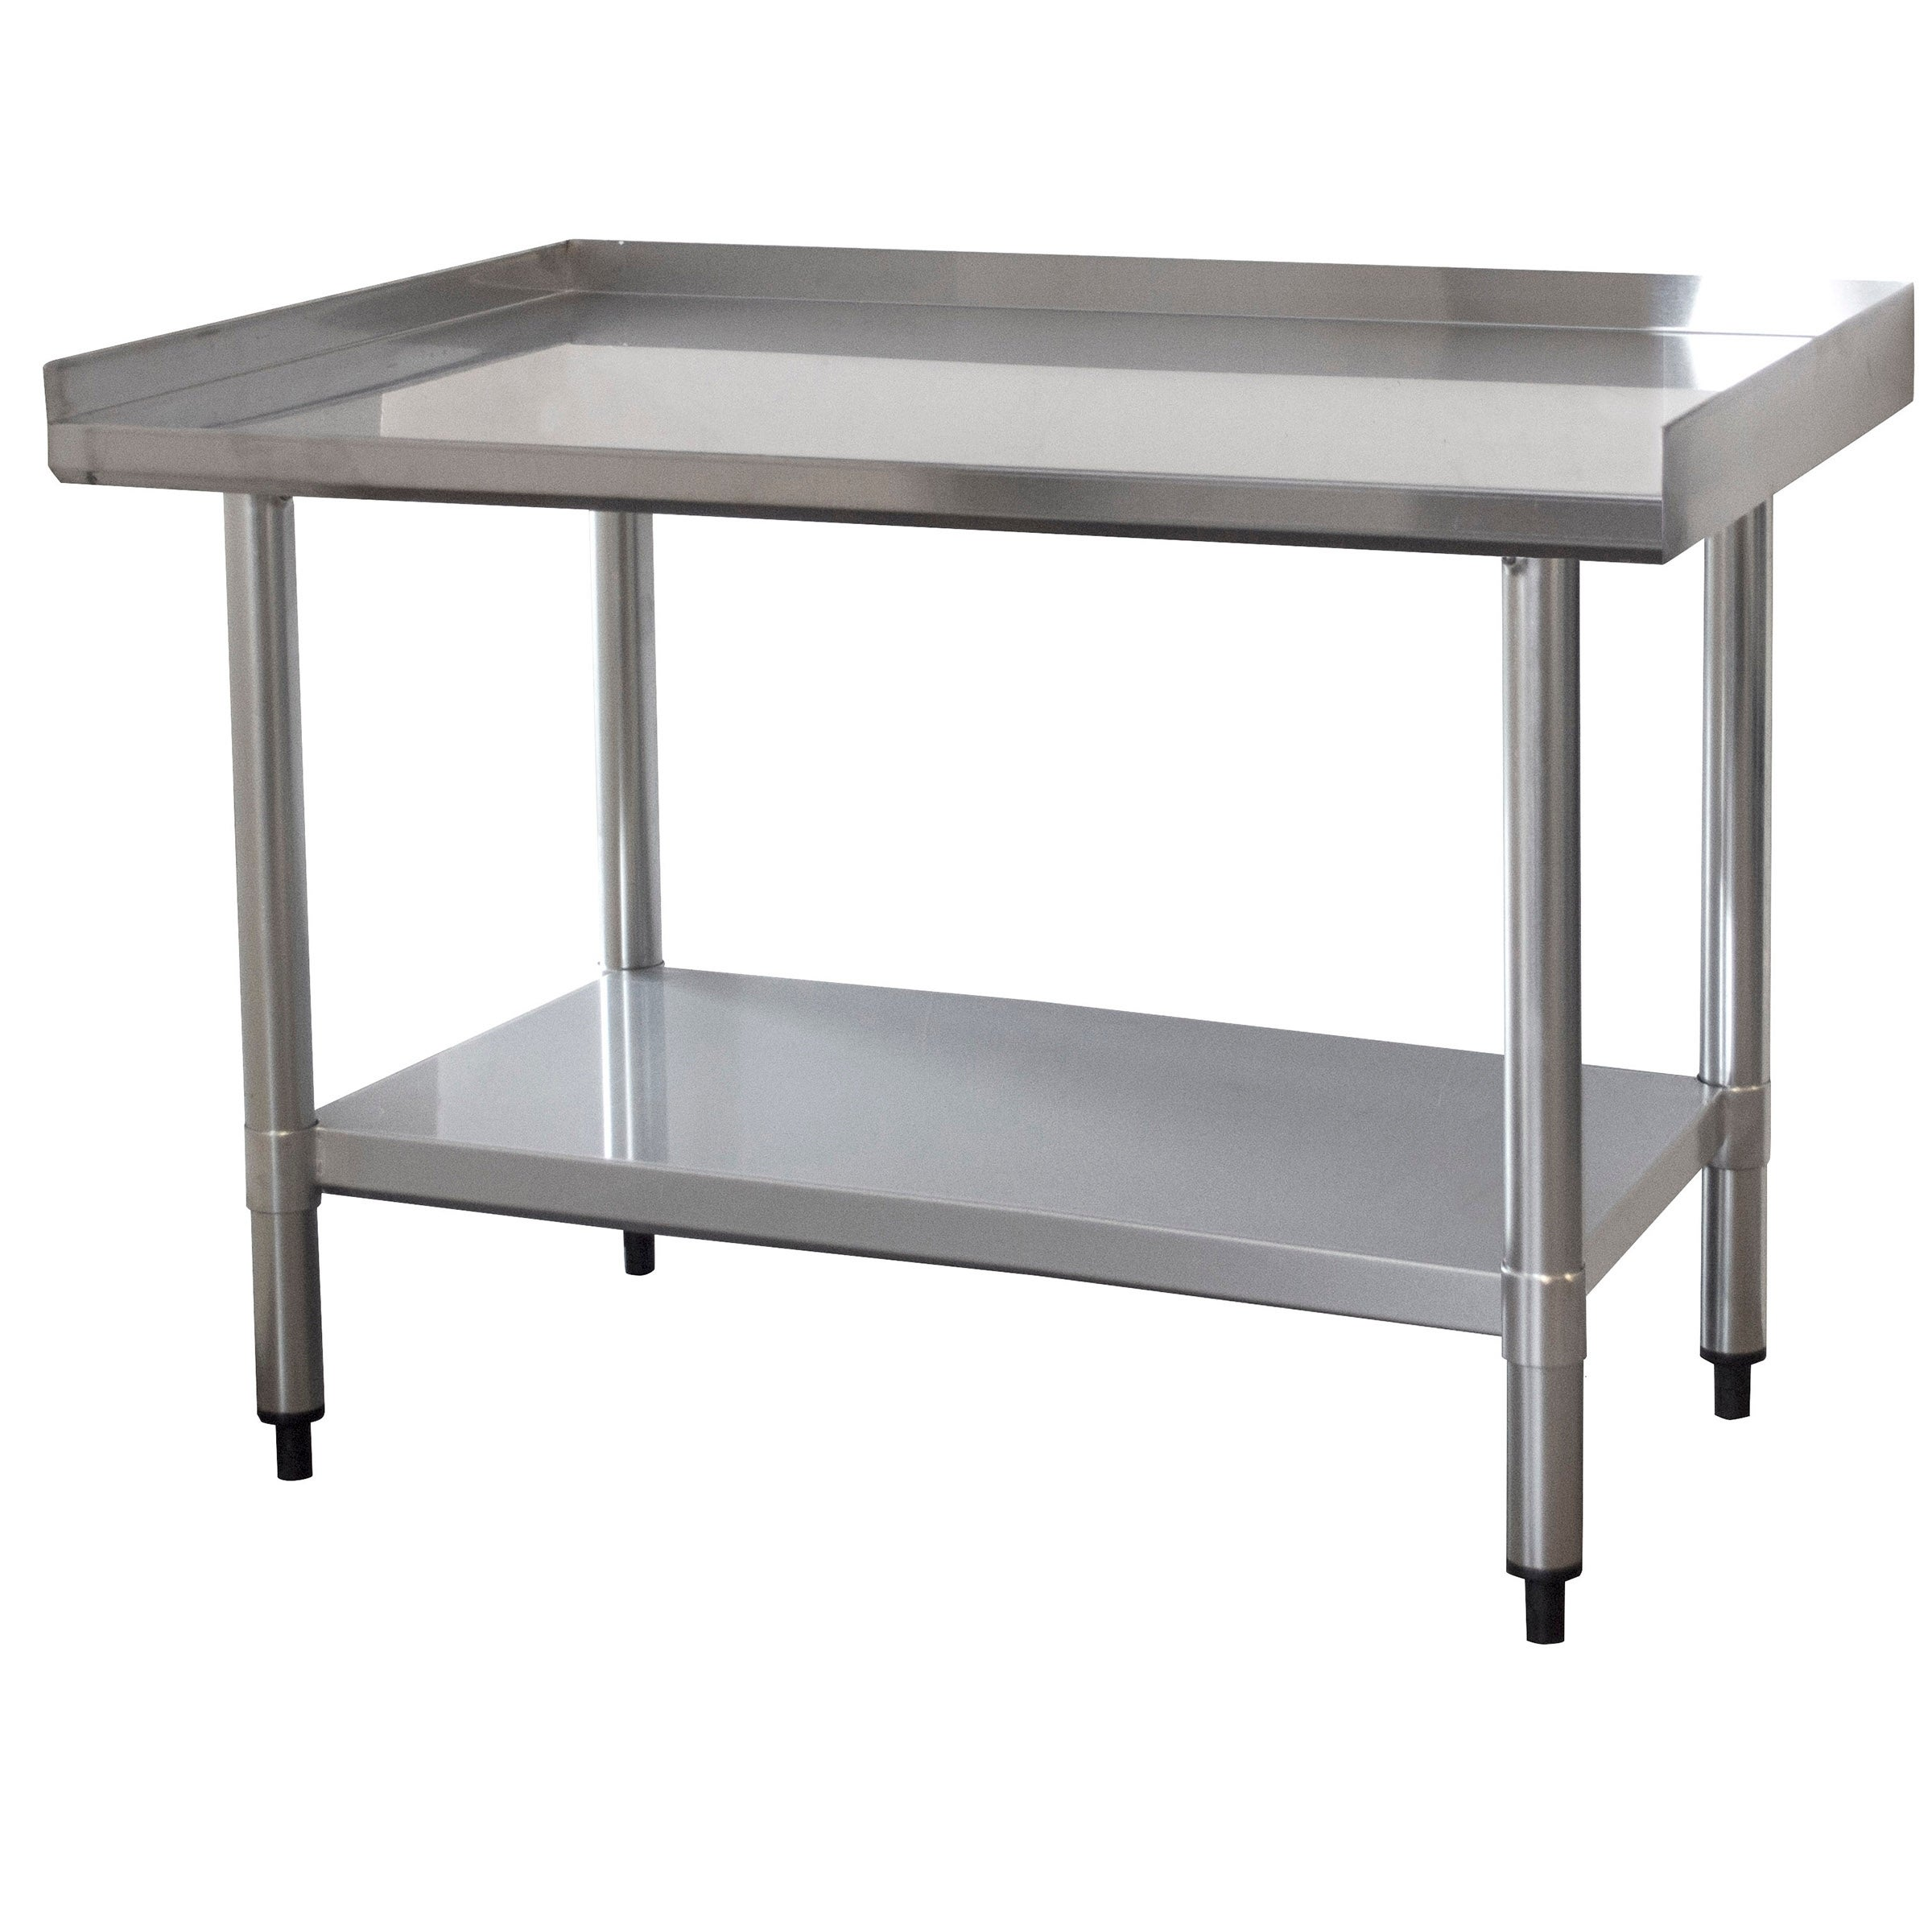 Shop Upturned Edge Stainless Steel Work Table 24 X 36 Inches   Free  Shipping Today   Overstock.com   21721451